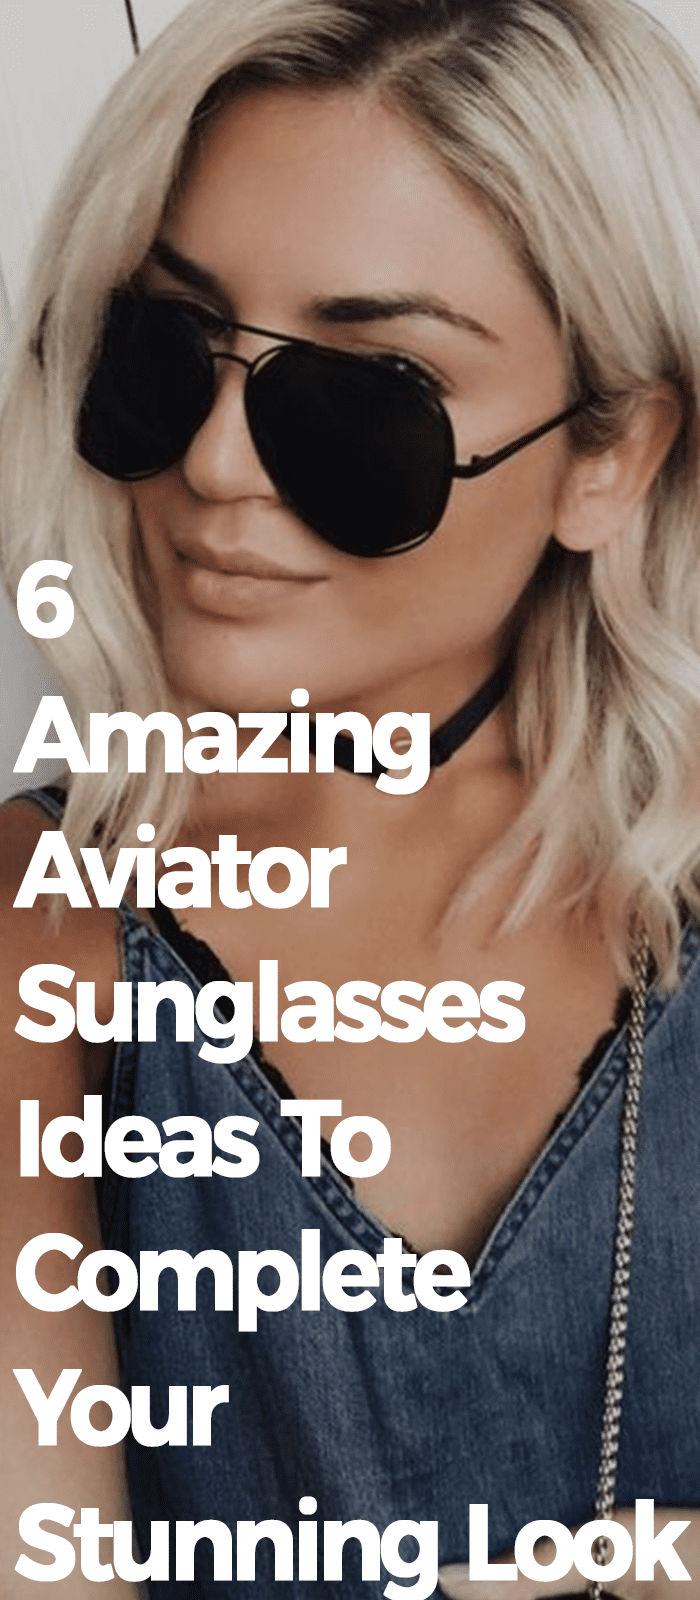 6 Amazing Aviator Sunglasses Ideas To Complete Your Stunning Look